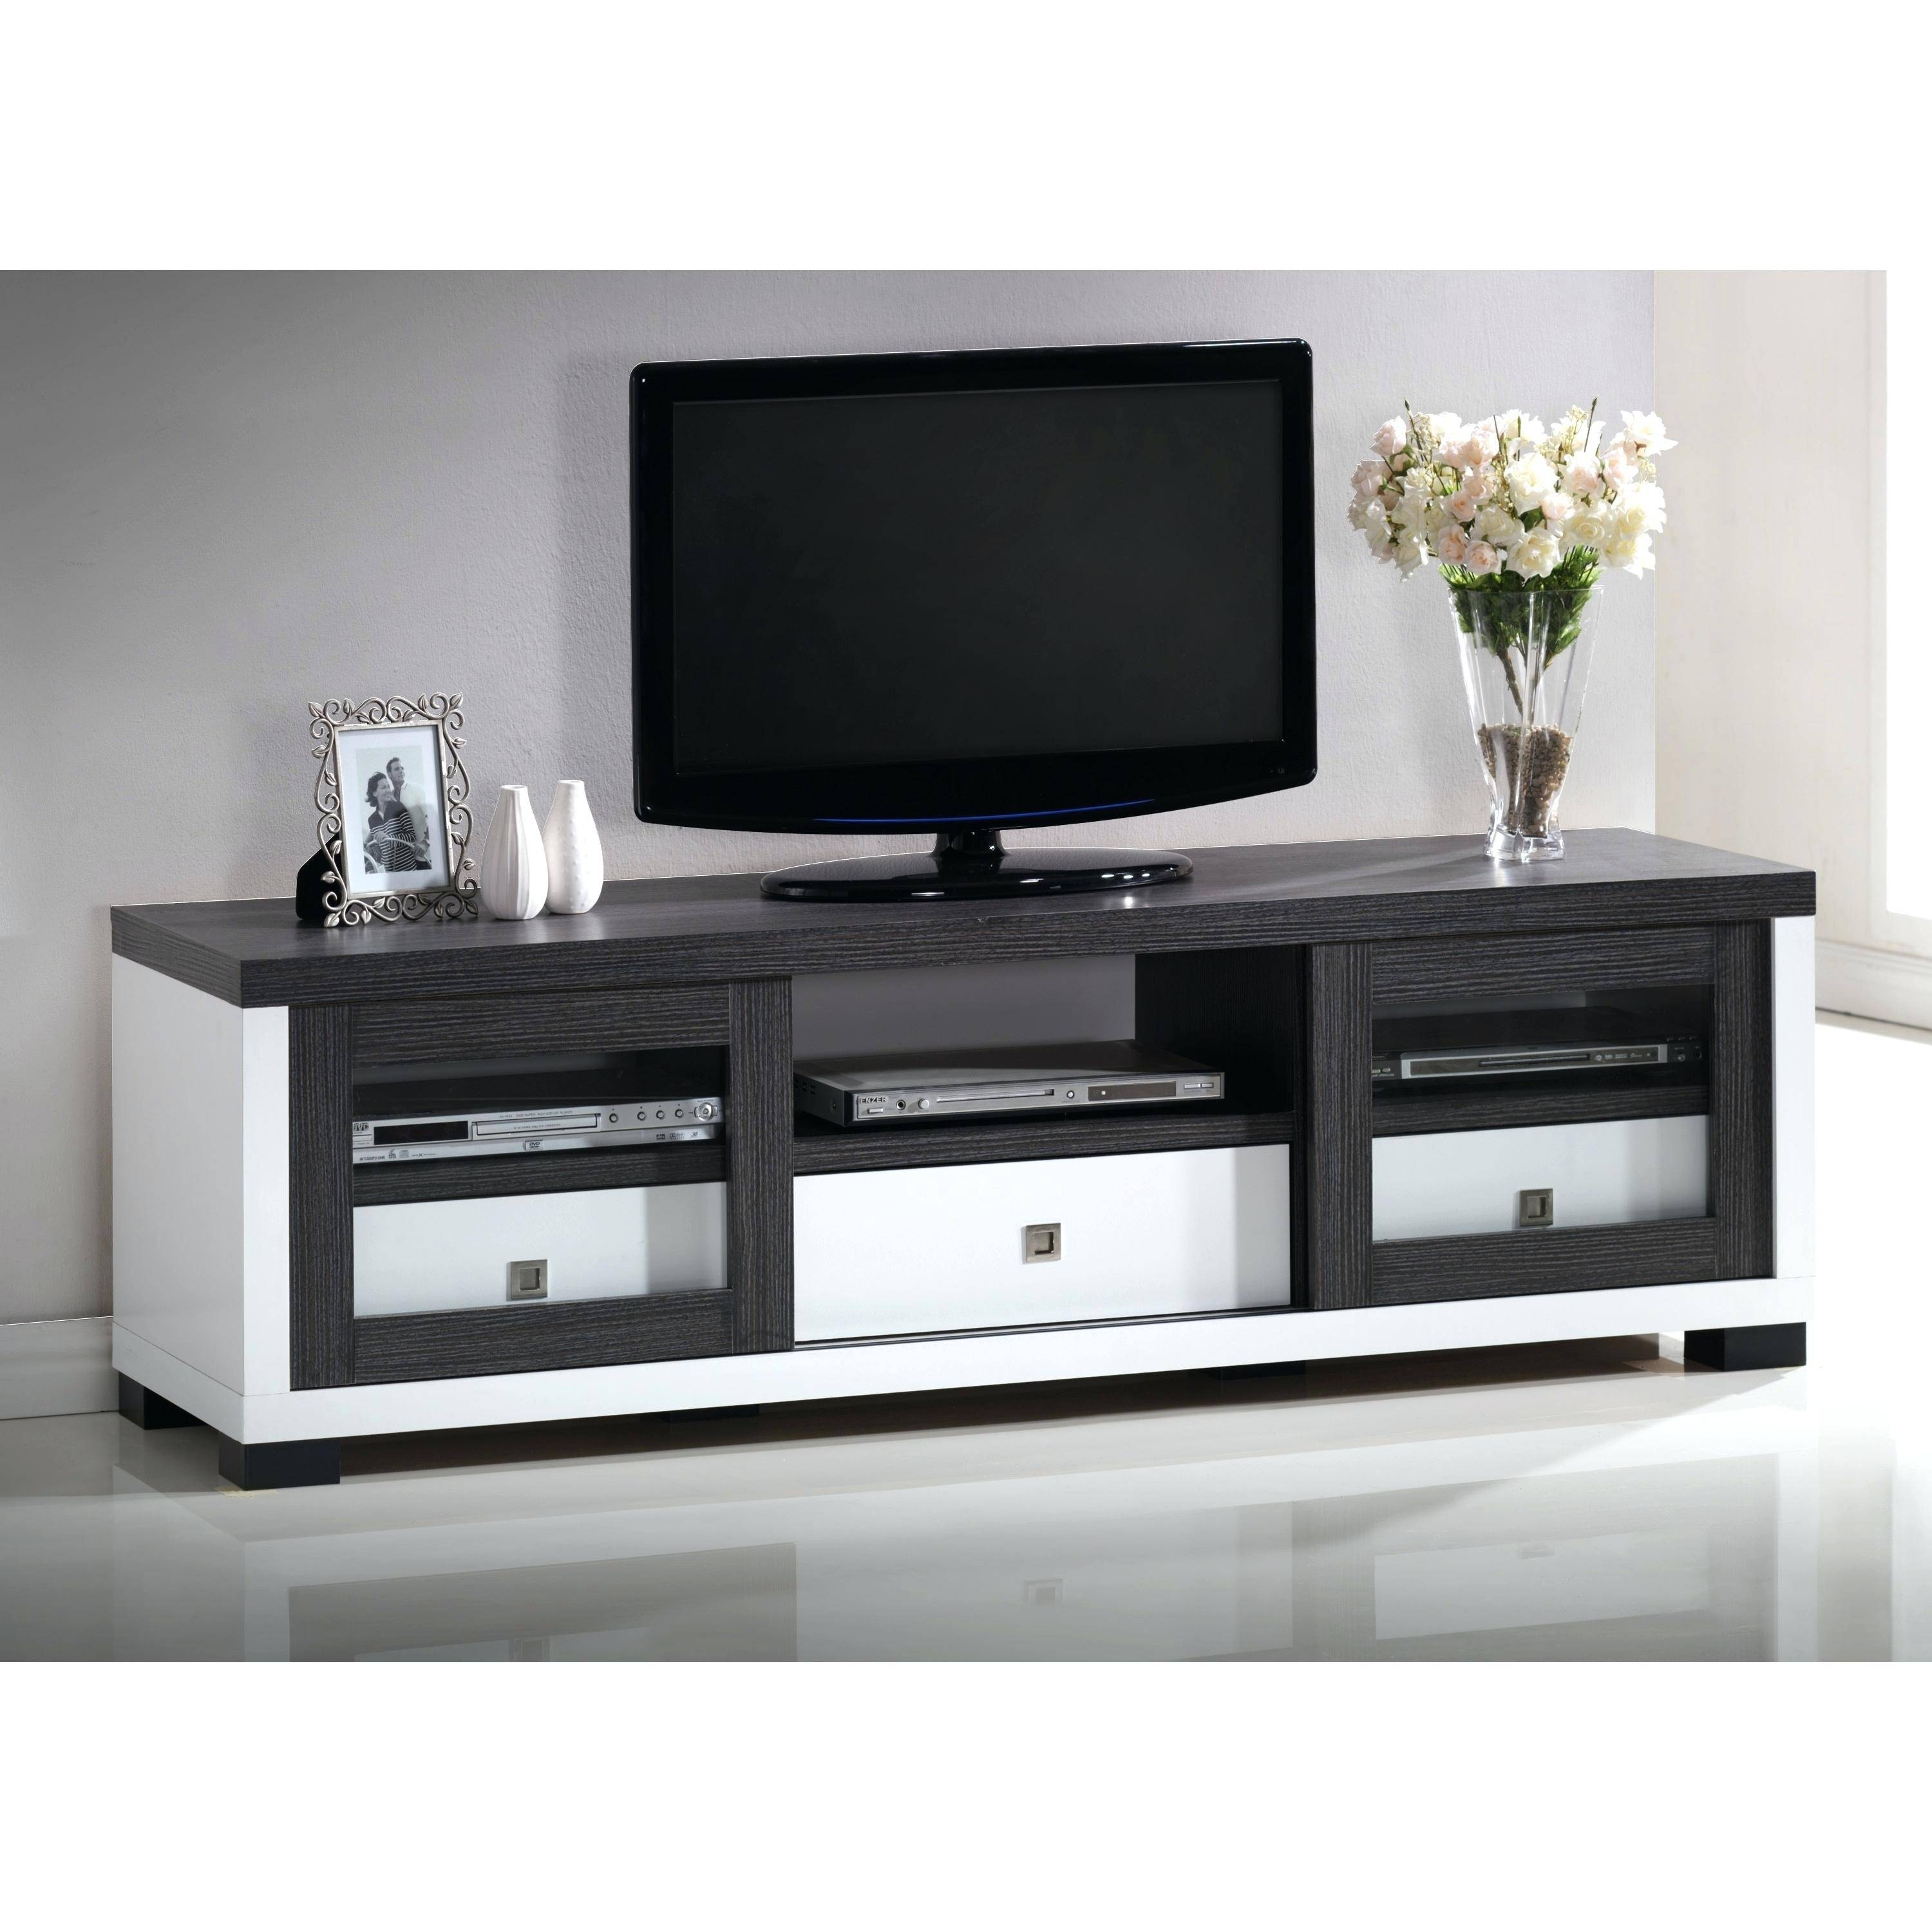 Tv Stand : Solid Wood Long Tv Stand Mirrored Tv Stand Glass with regard to Extra Long Tv Stands (Image 14 of 15)